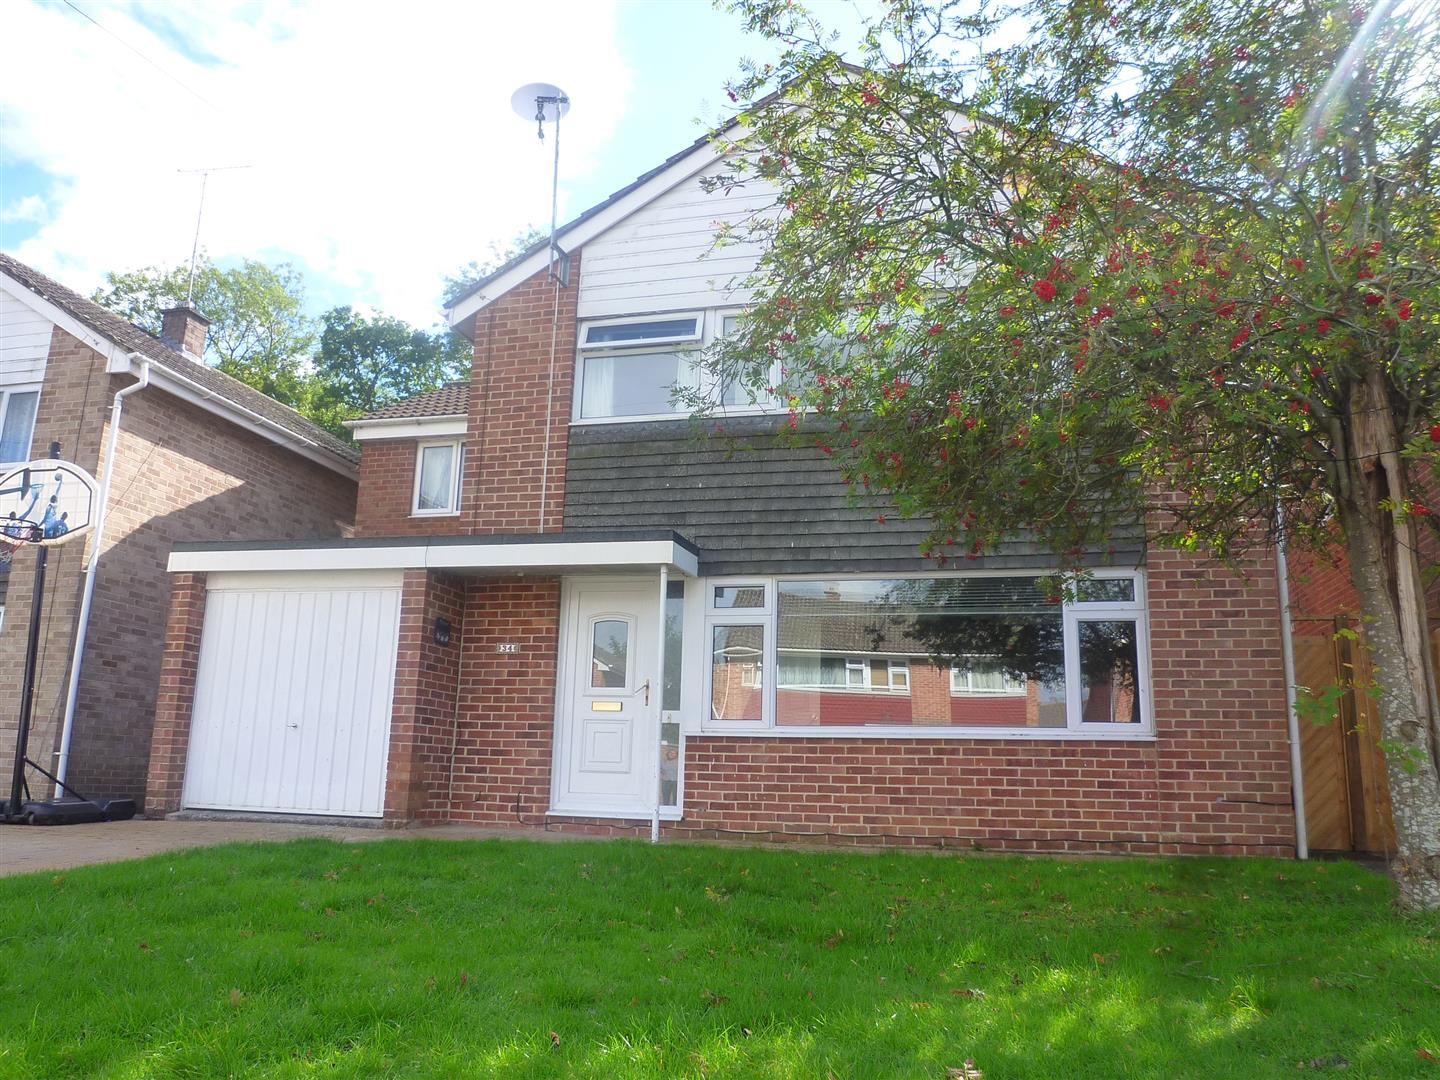 4 Bedrooms Detached House for sale in Green Lane, Trowbridge